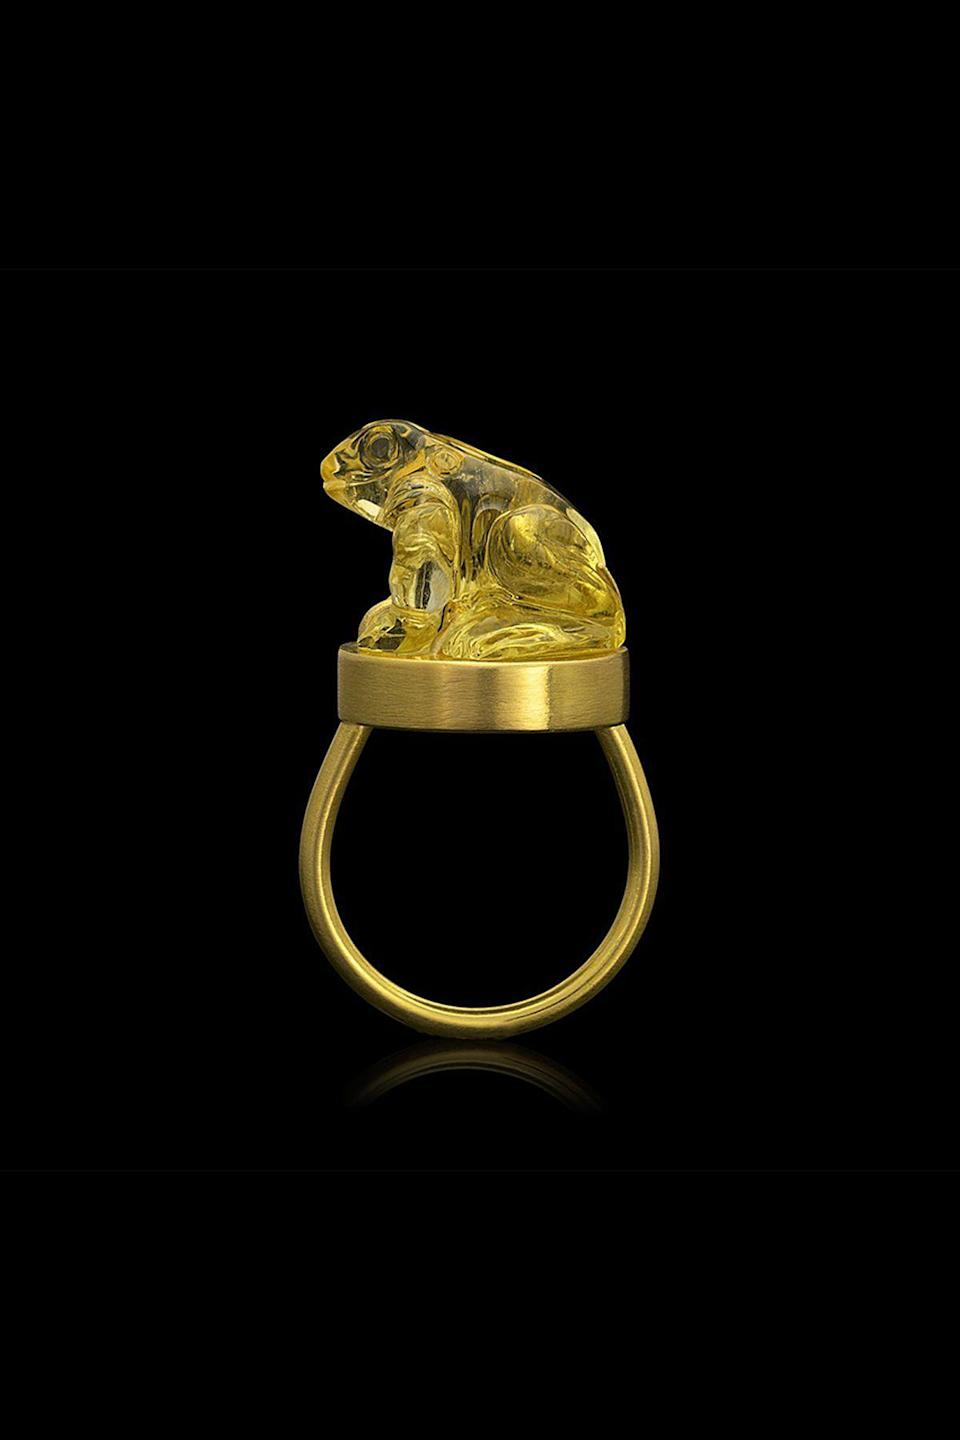 """<p><strong>Loren Nicole</strong></p><p>loren-nicole.com</p><p><strong>$9000.00</strong></p><p><a href=""""https://www.loren-nicole.com/collections/rings/products/amulet-ring-heket-beryl"""" rel=""""nofollow noopener"""" target=""""_blank"""" data-ylk=""""slk:Shop Now"""" class=""""link rapid-noclick-resp"""">Shop Now</a></p><p>Loren Nicole Teetelli might have the most unconventional background of all the designers on this list: she used to be archaeologist. Since transitioning to the world of jewelry in 2016, she has channeled her passion for ancient techniques and civilizations into crafting unique talismans. Take this 22k gold ring, for example, which is crowned with a yellow Beryl that has been hand-carved by a master lapidary into the shape of Heket, the Egyptian goddess of fertility. </p>"""